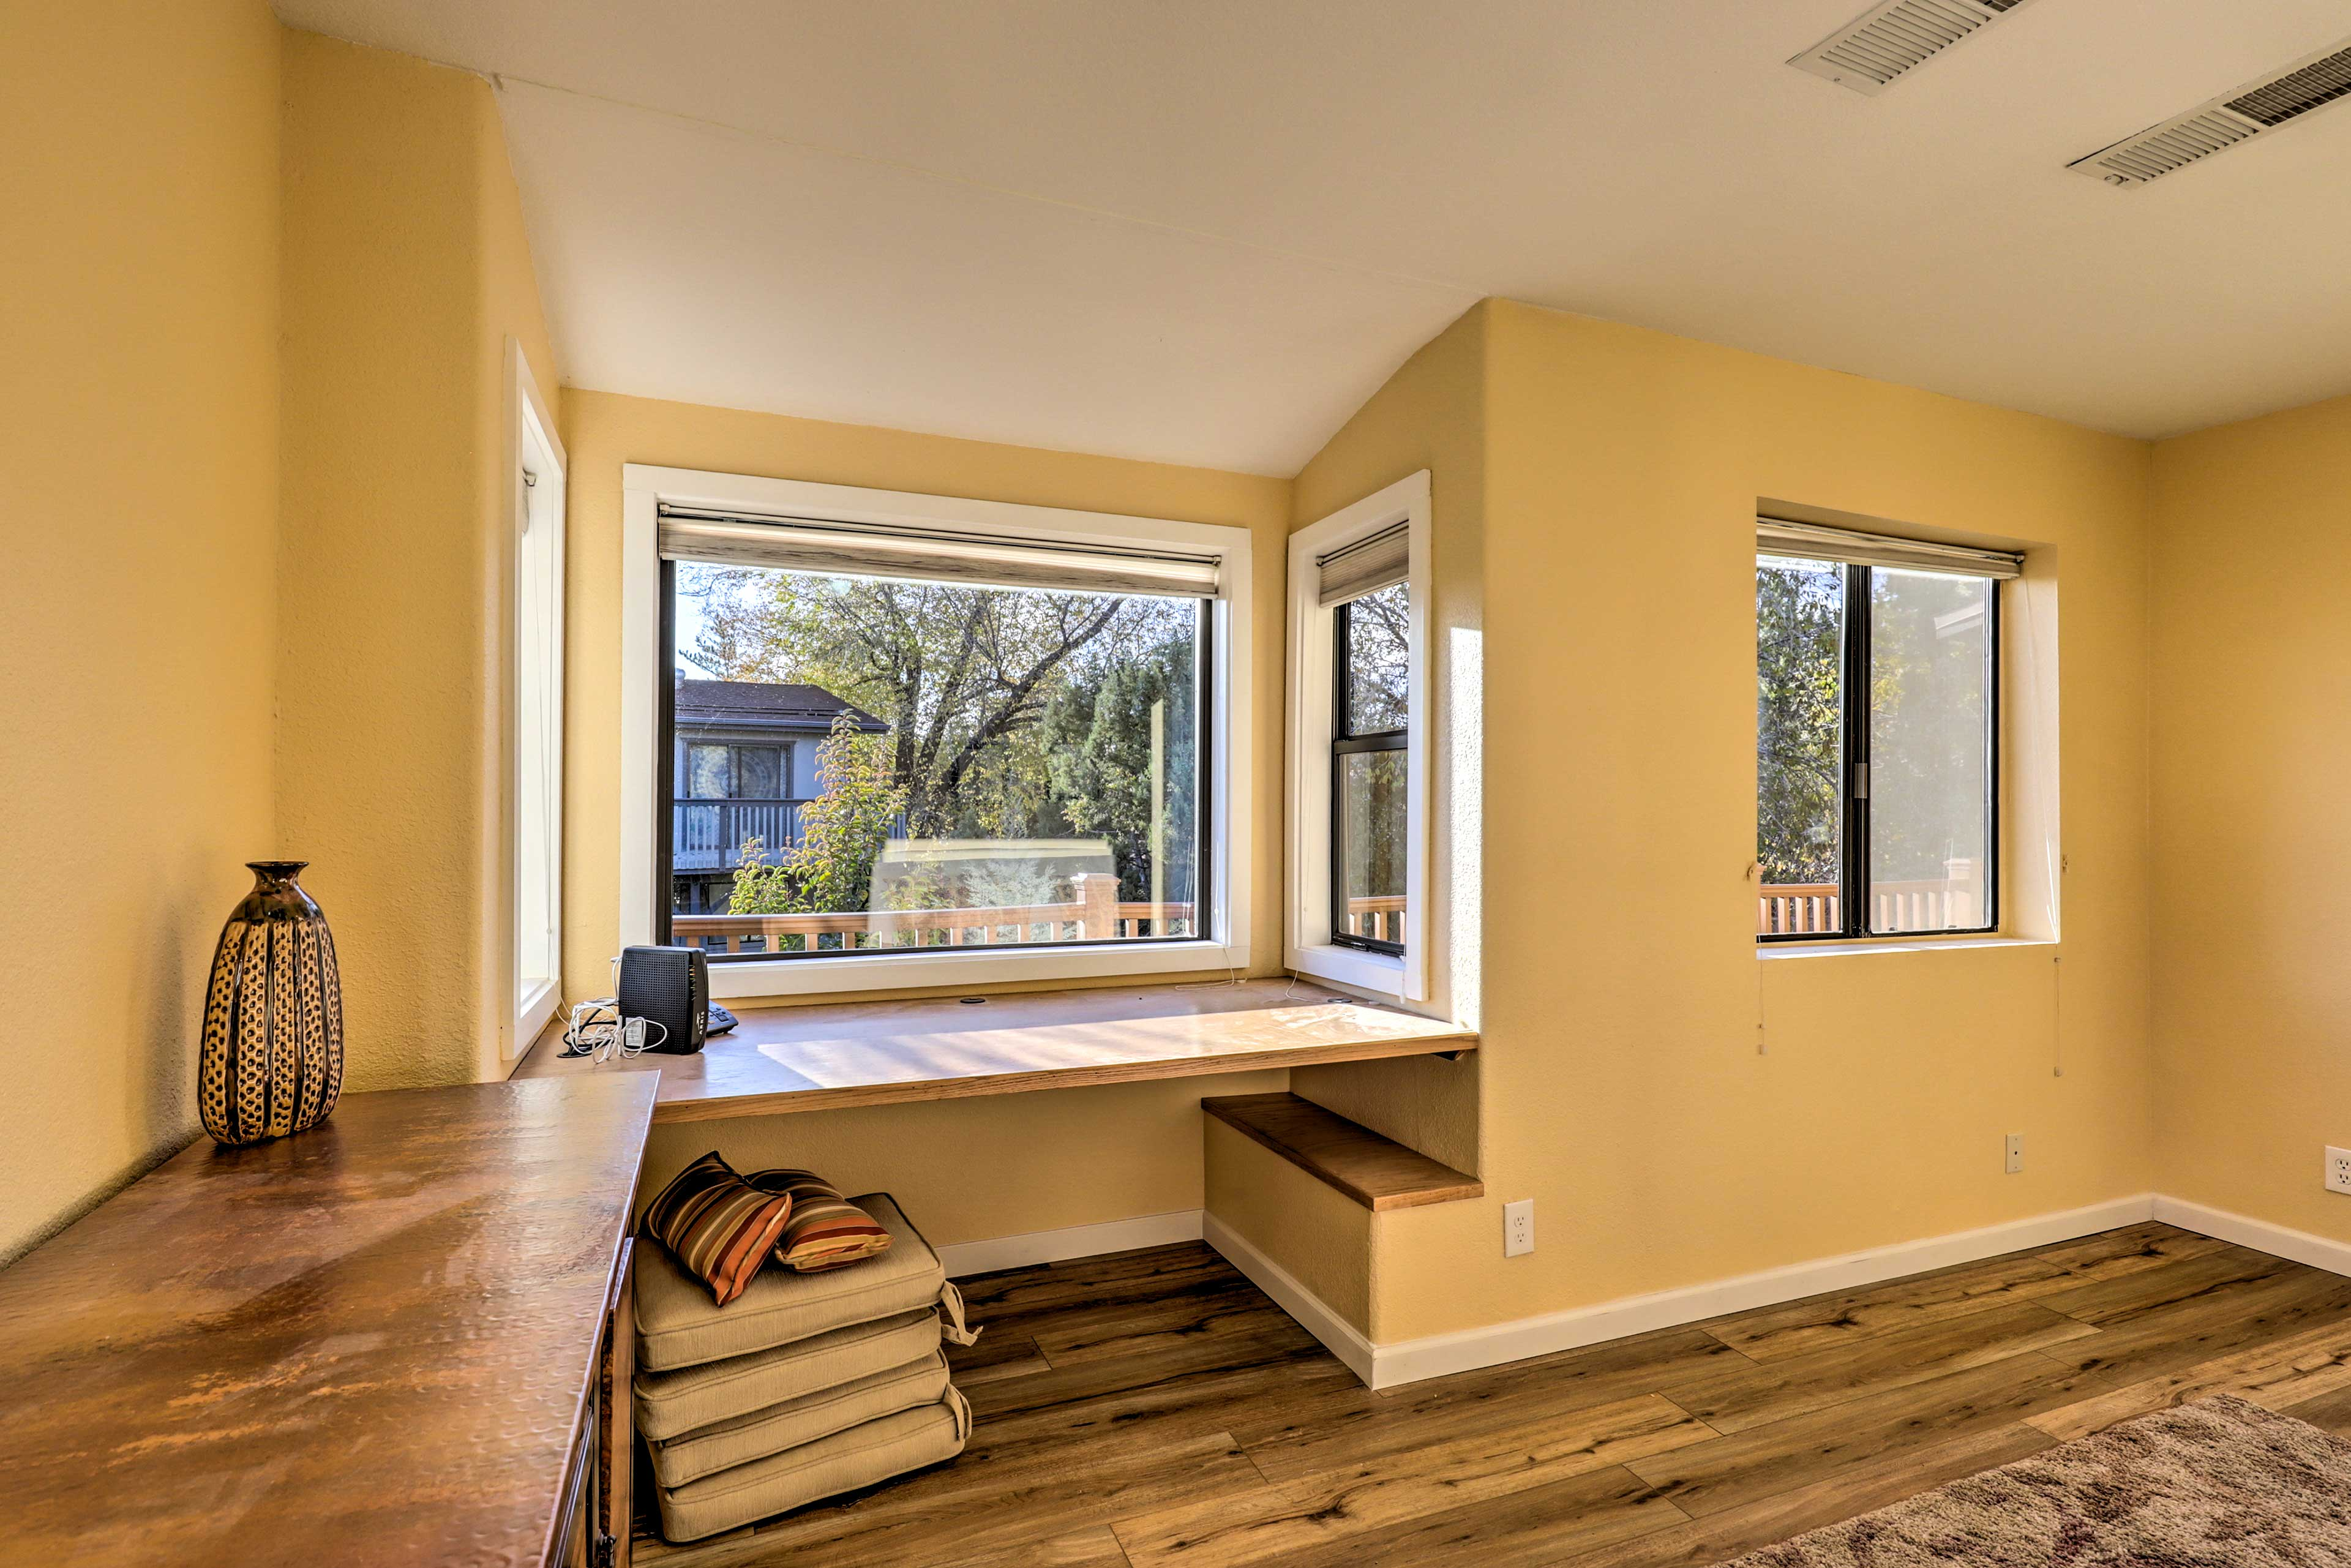 This house offers a desk with a view for those that need to get work done.